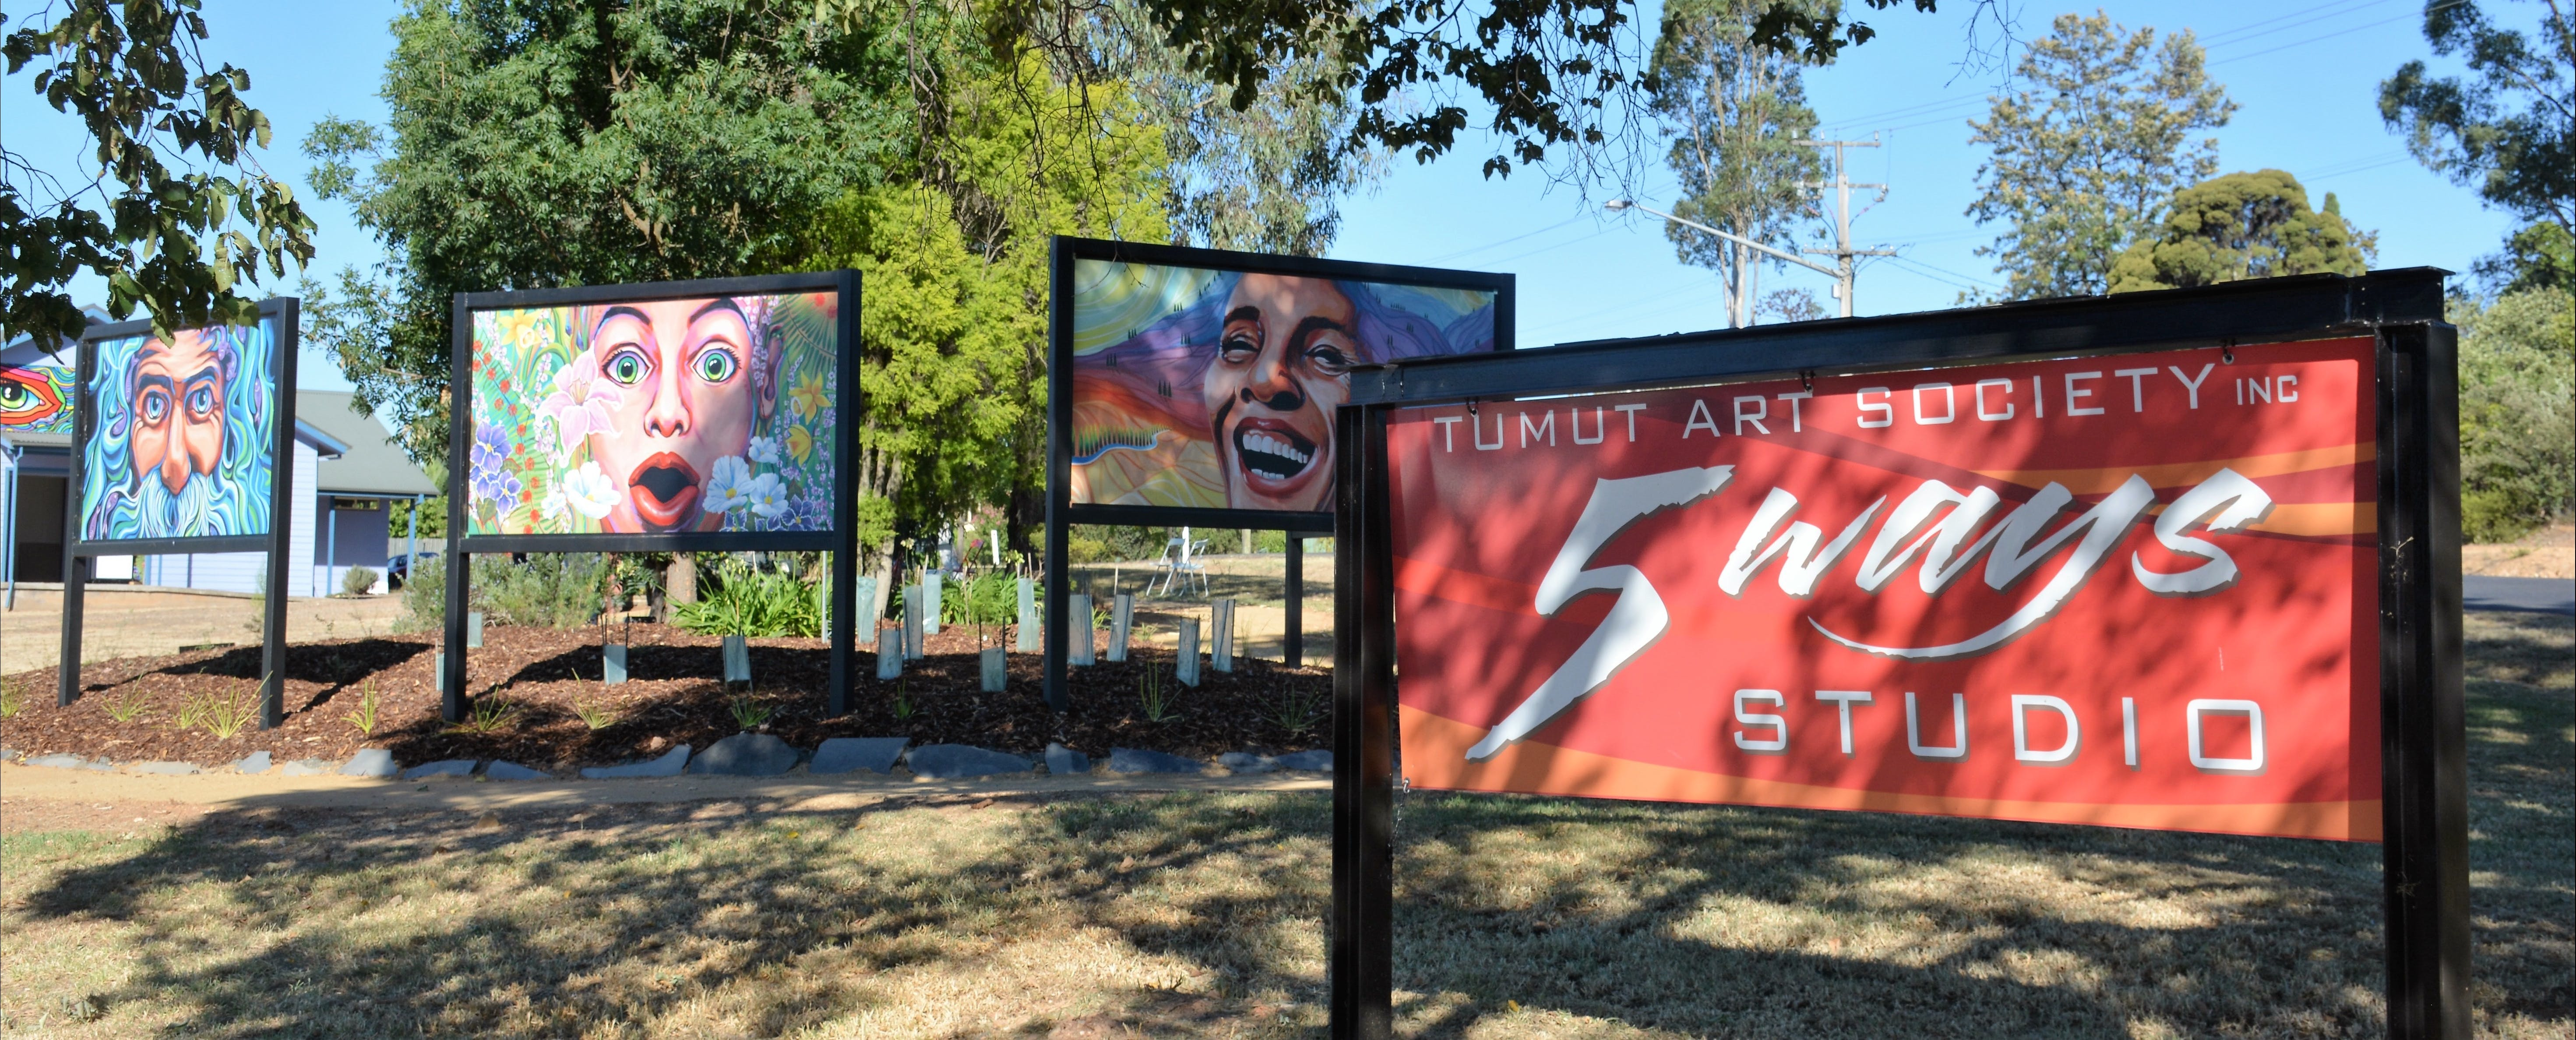 Tumut Art Society 5Ways Gallery - Broome Tourism